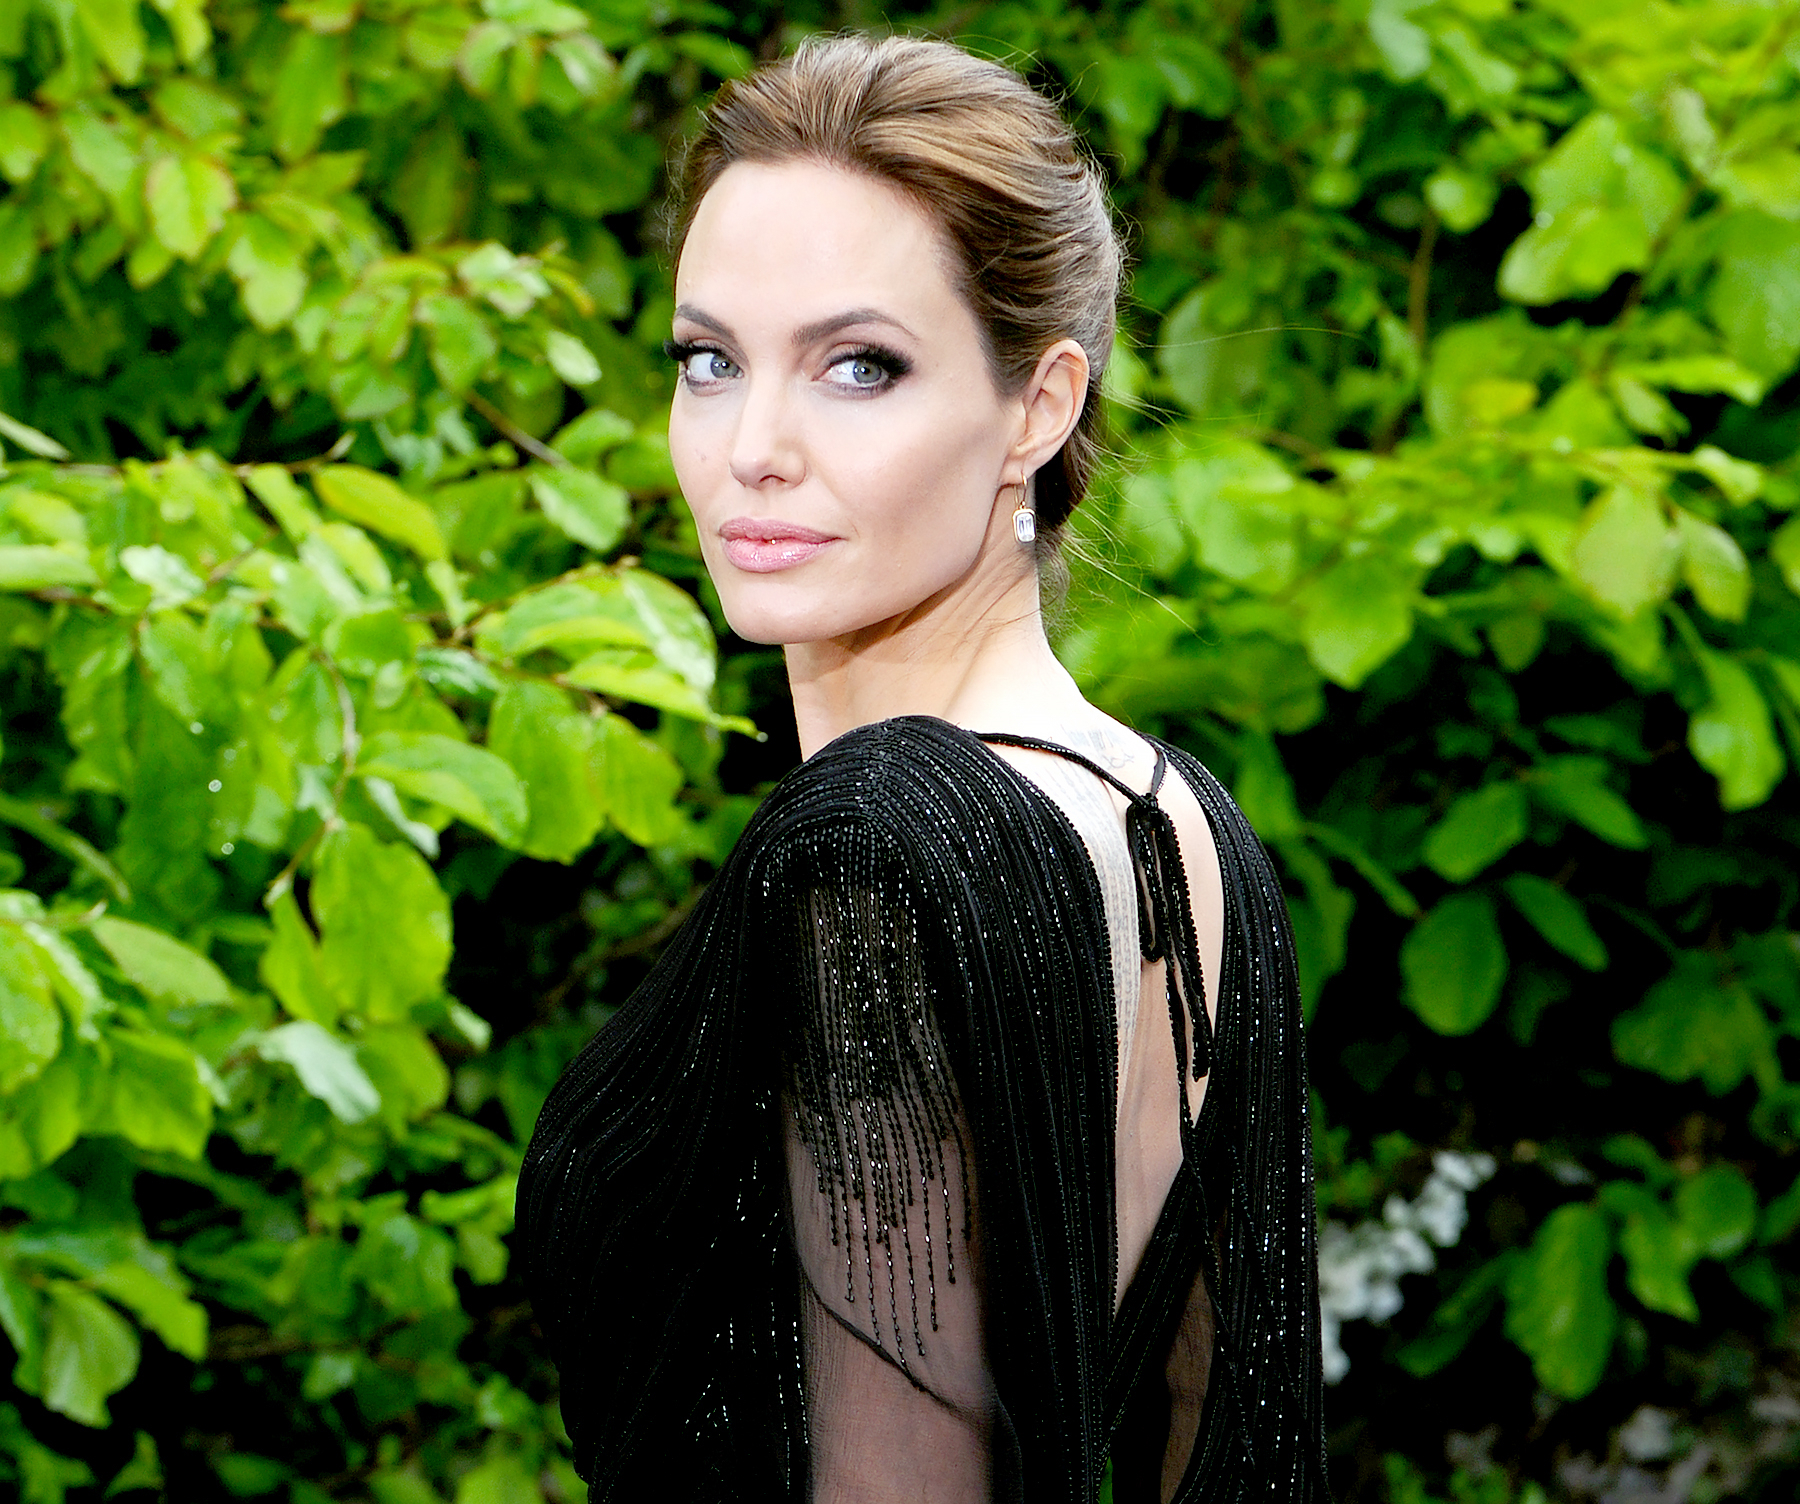 Angelina Jolie attends a private reception as costumes and props from Disney's 'Maleficent' are exhibited in support of Great Ormond Street Hospital at Kensington Palace in London on May 8, 2014.